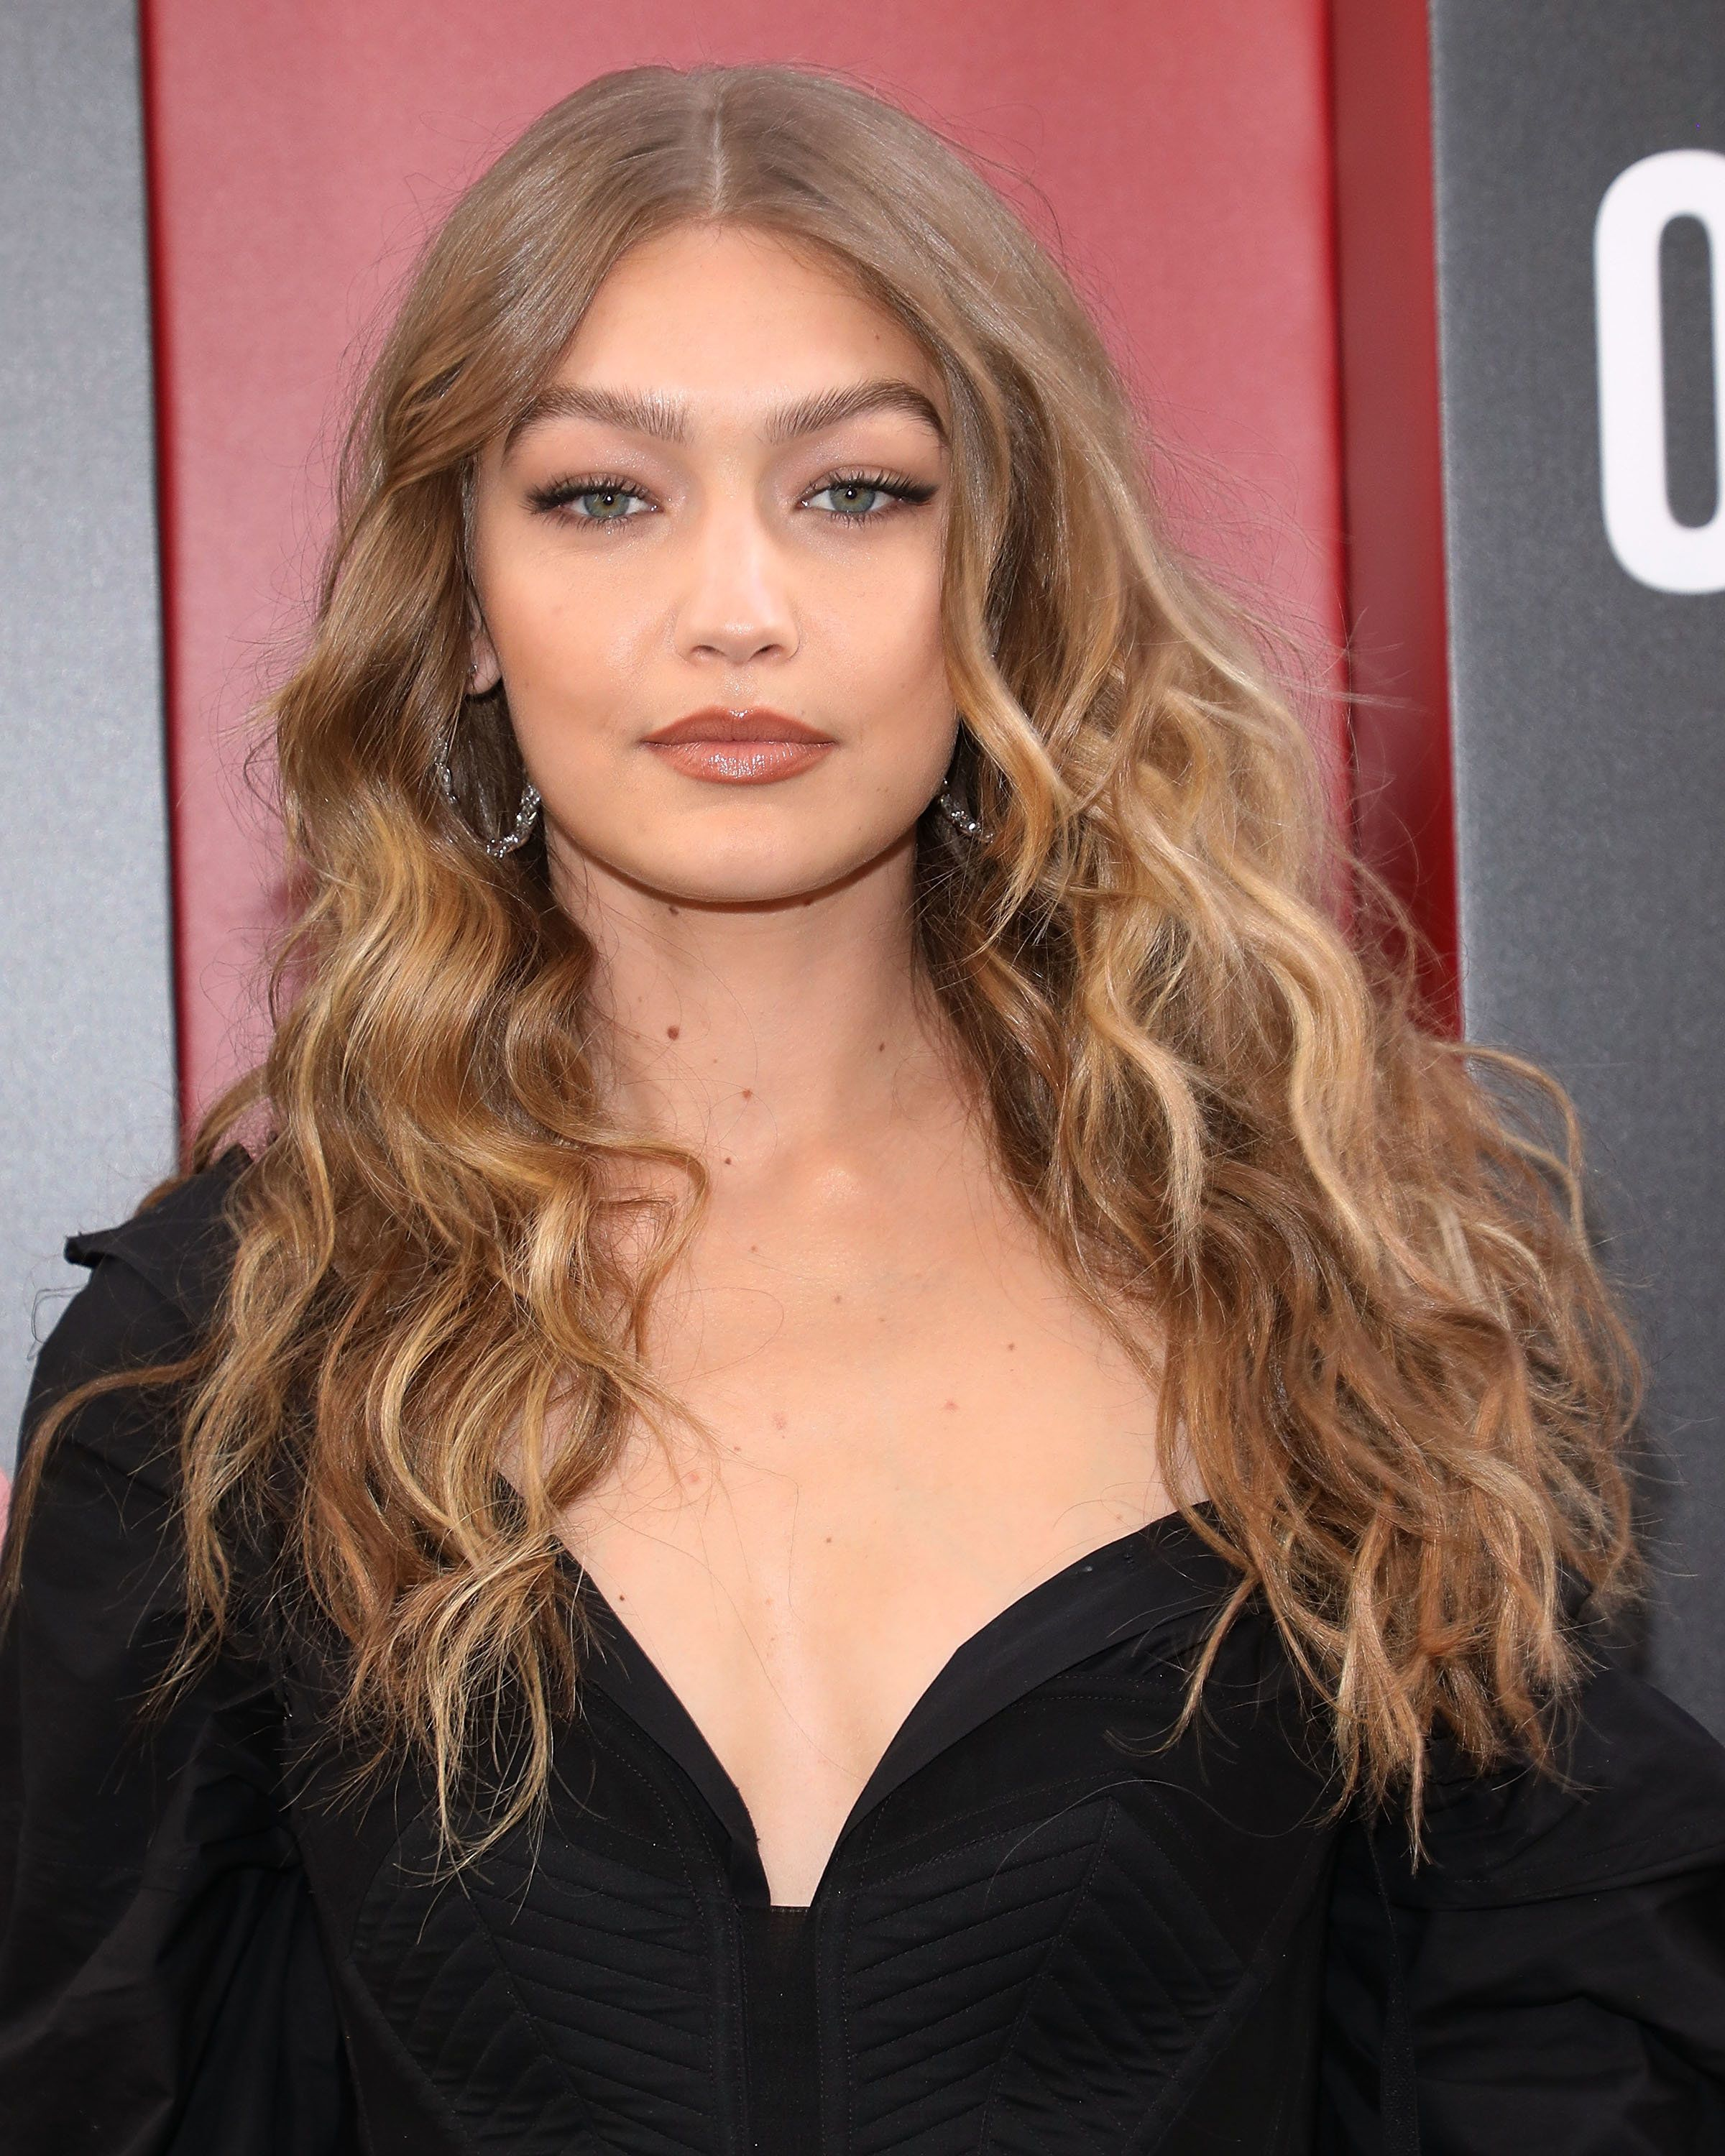 NEW YORK, NY - JUNE 05:  Gigi Hadid attends the world premiere of 'Ocean's 8' at Alice Tully Hall at Lincoln Center on June 5, 2018 in New York City.  (Photo by Taylor Hill/Getty Images)